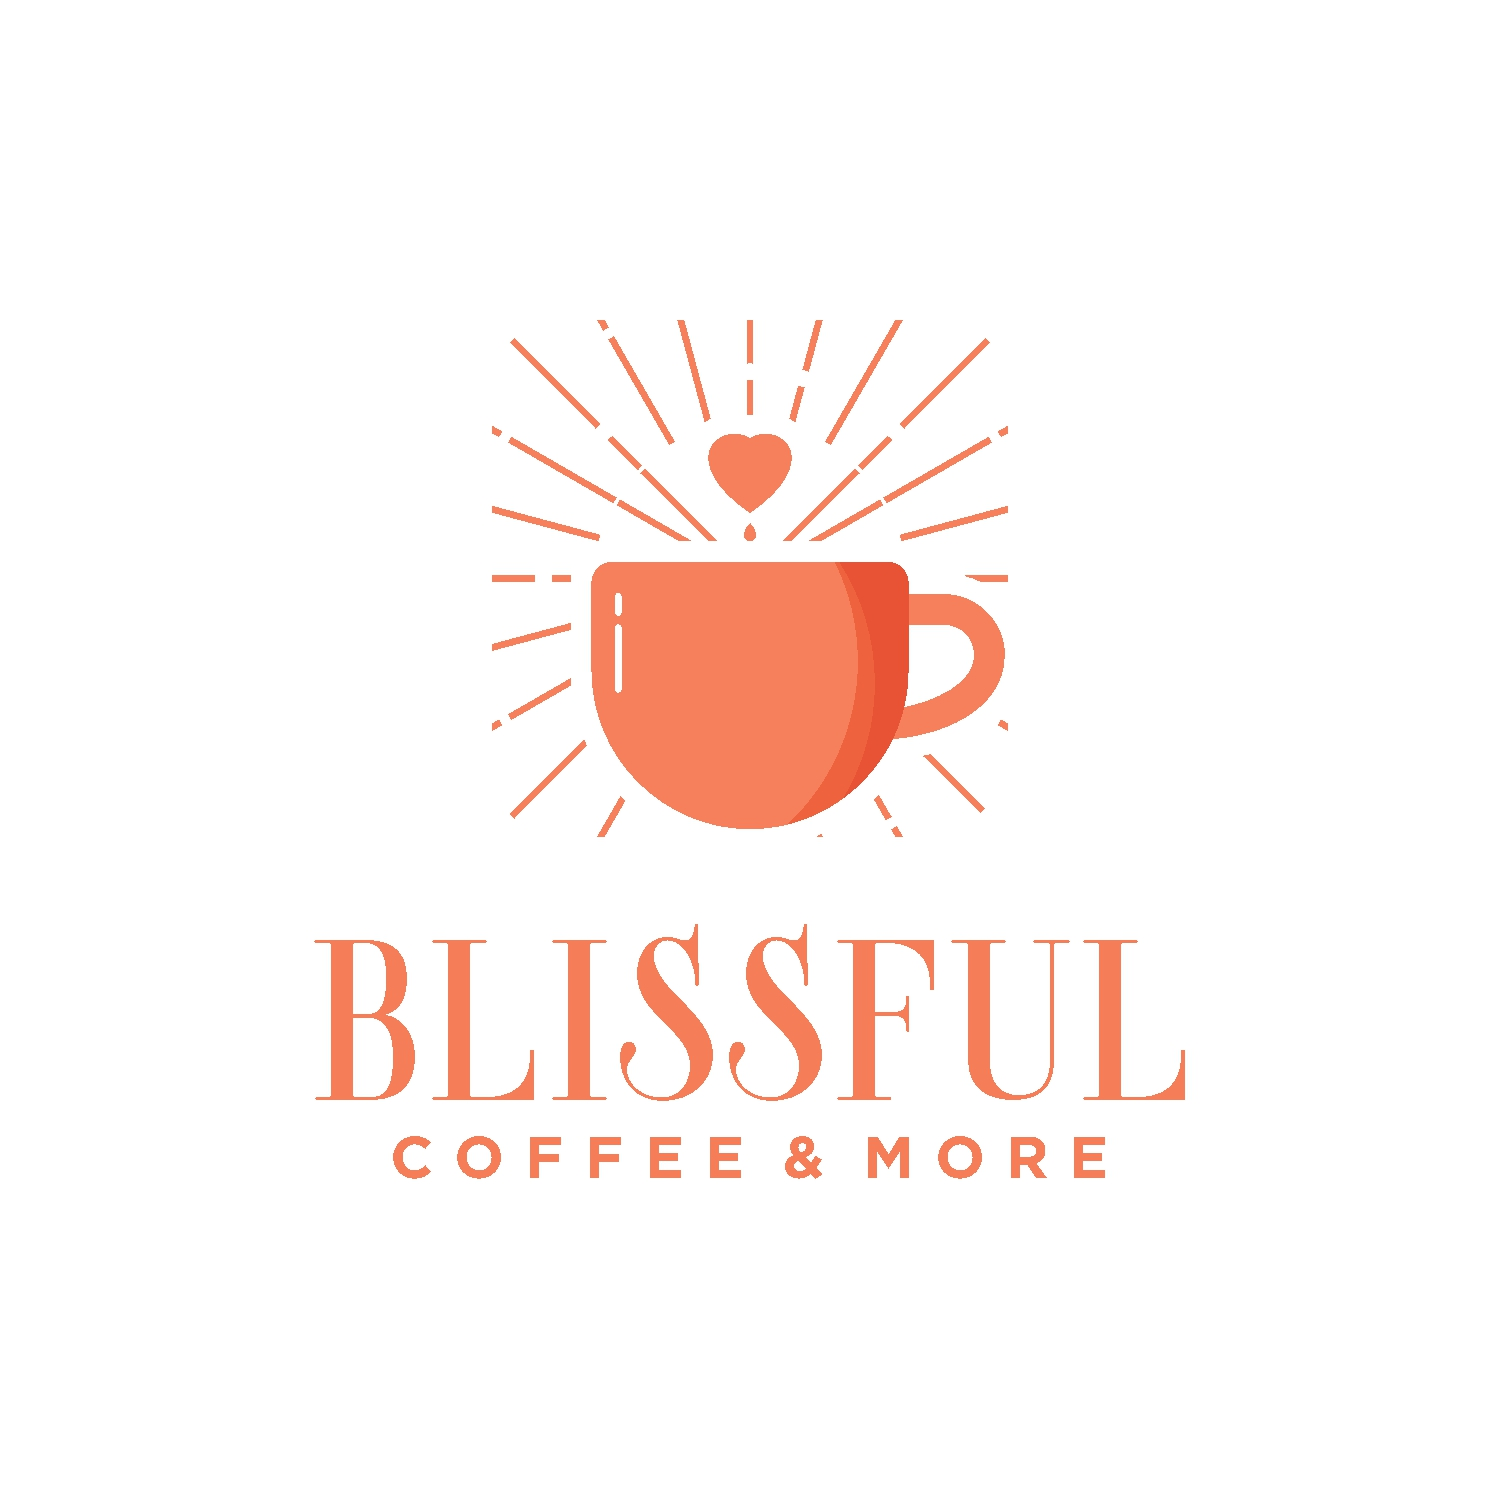 Blissful Coffee & More